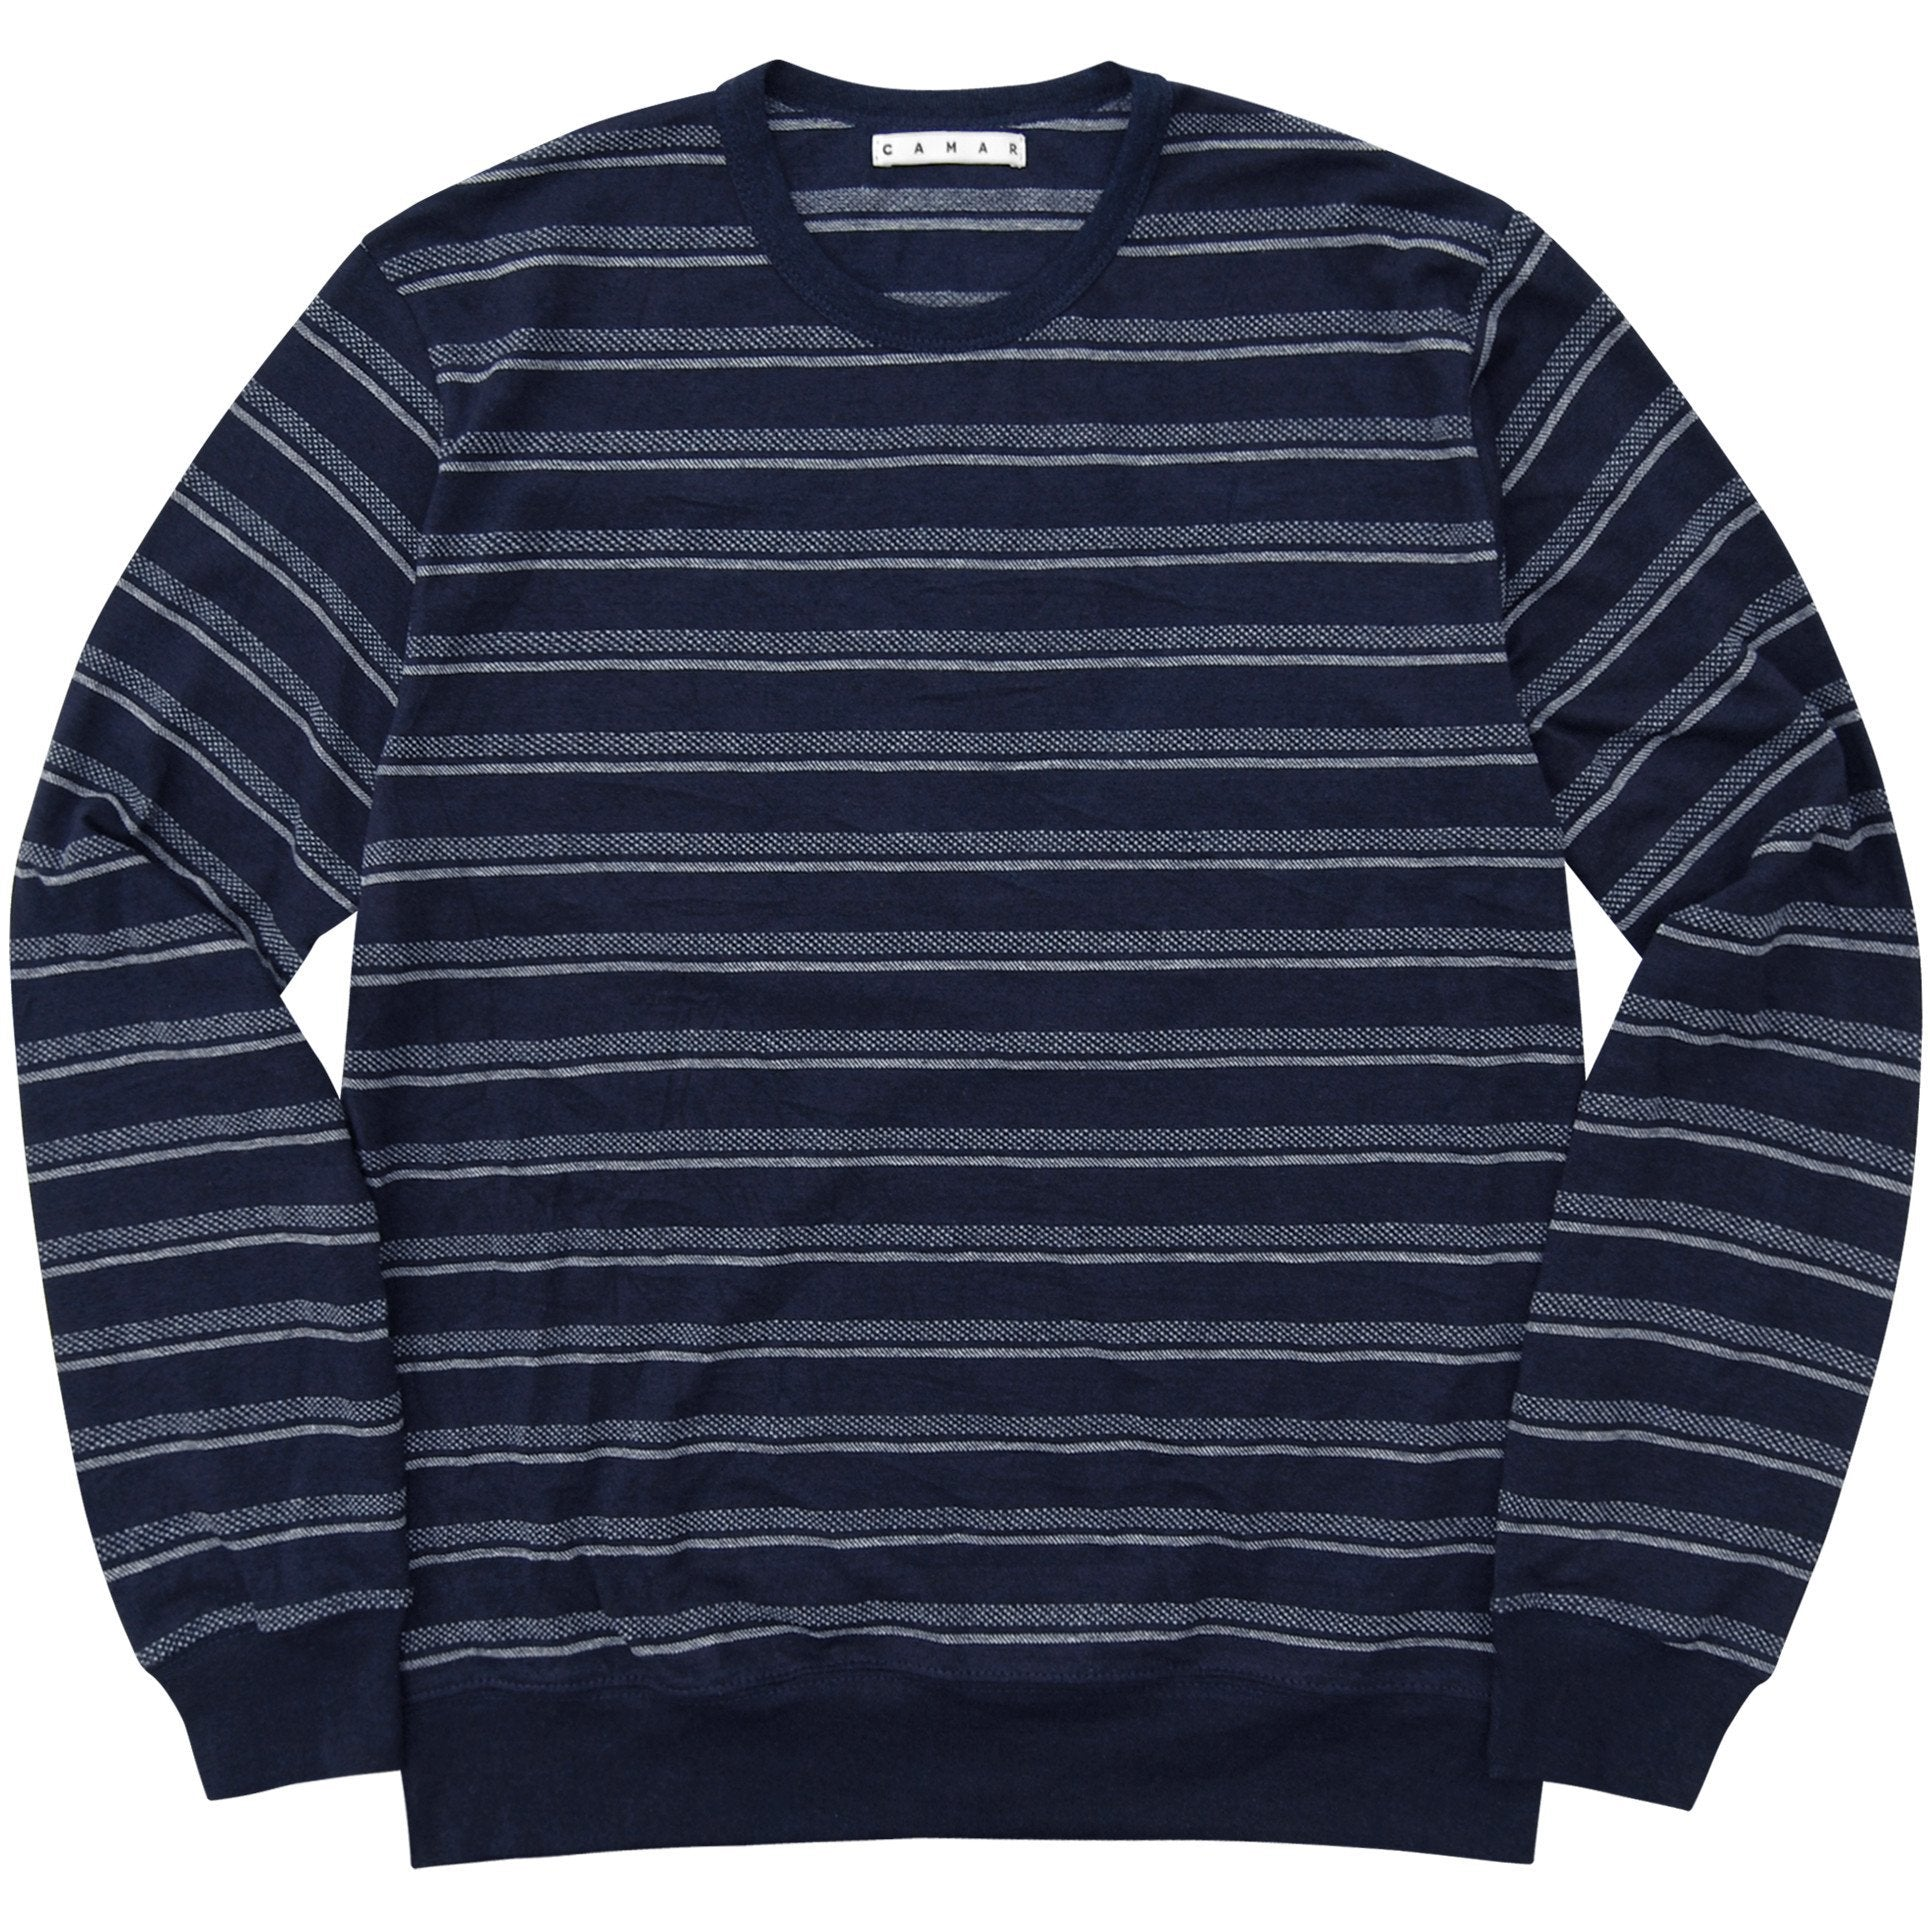 Rush Long Sleeve Shirt (Indigo)